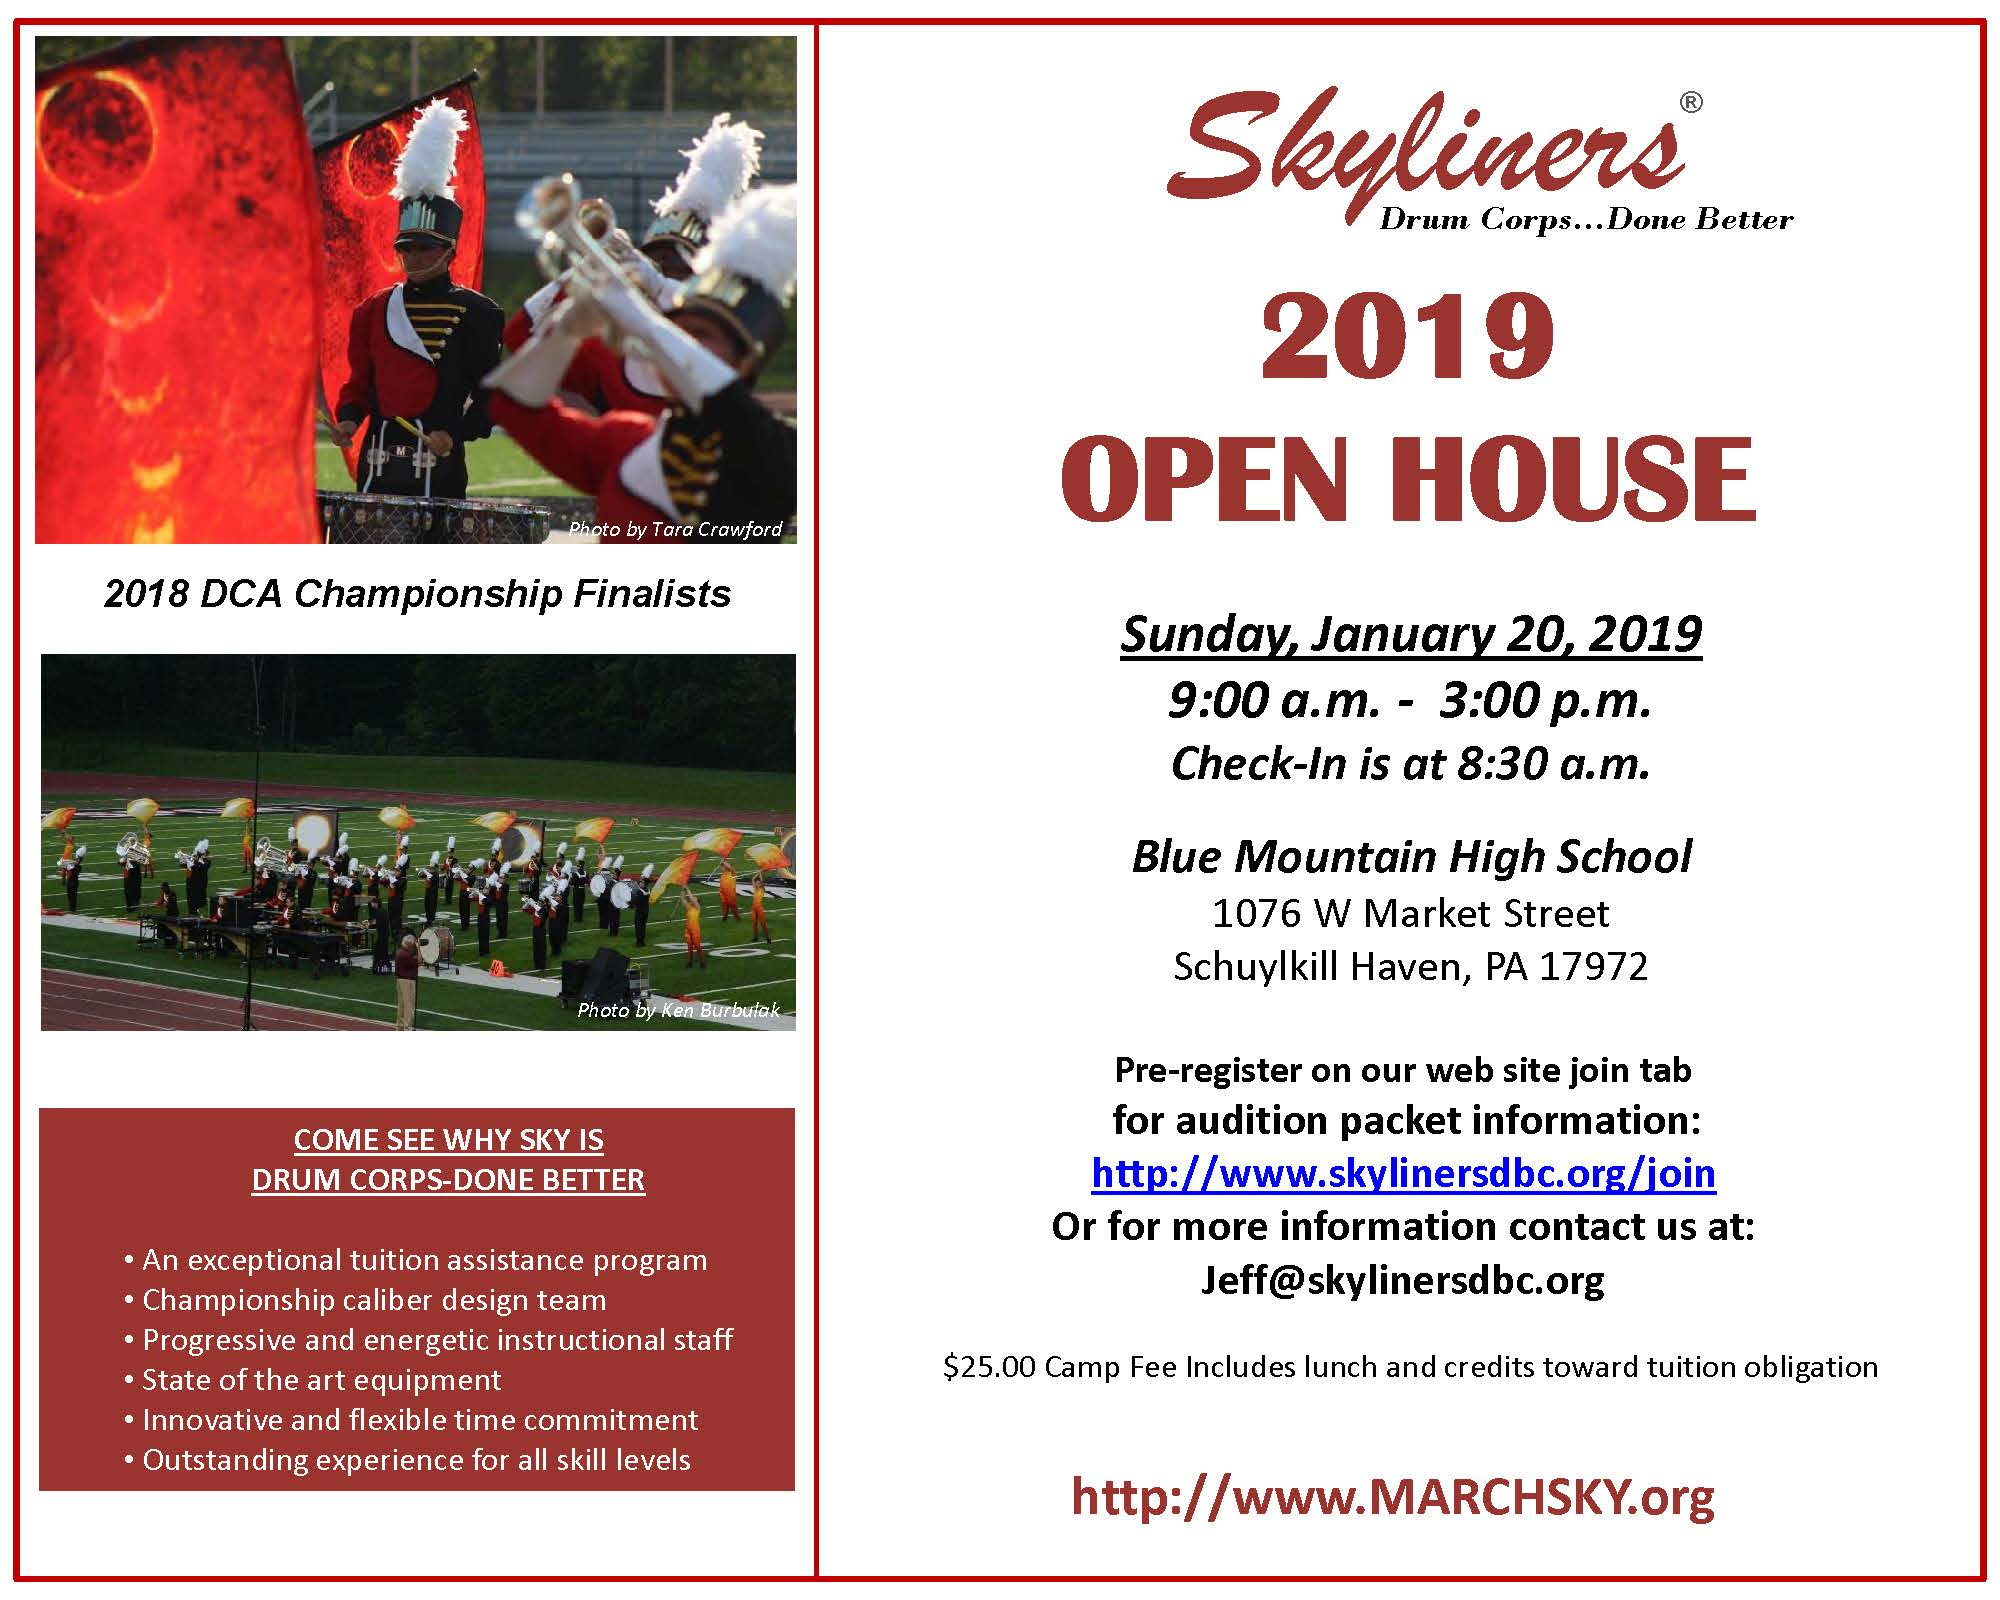 2019_Skyliners_OPEN_HOUSE_2019_FINAL.jpg